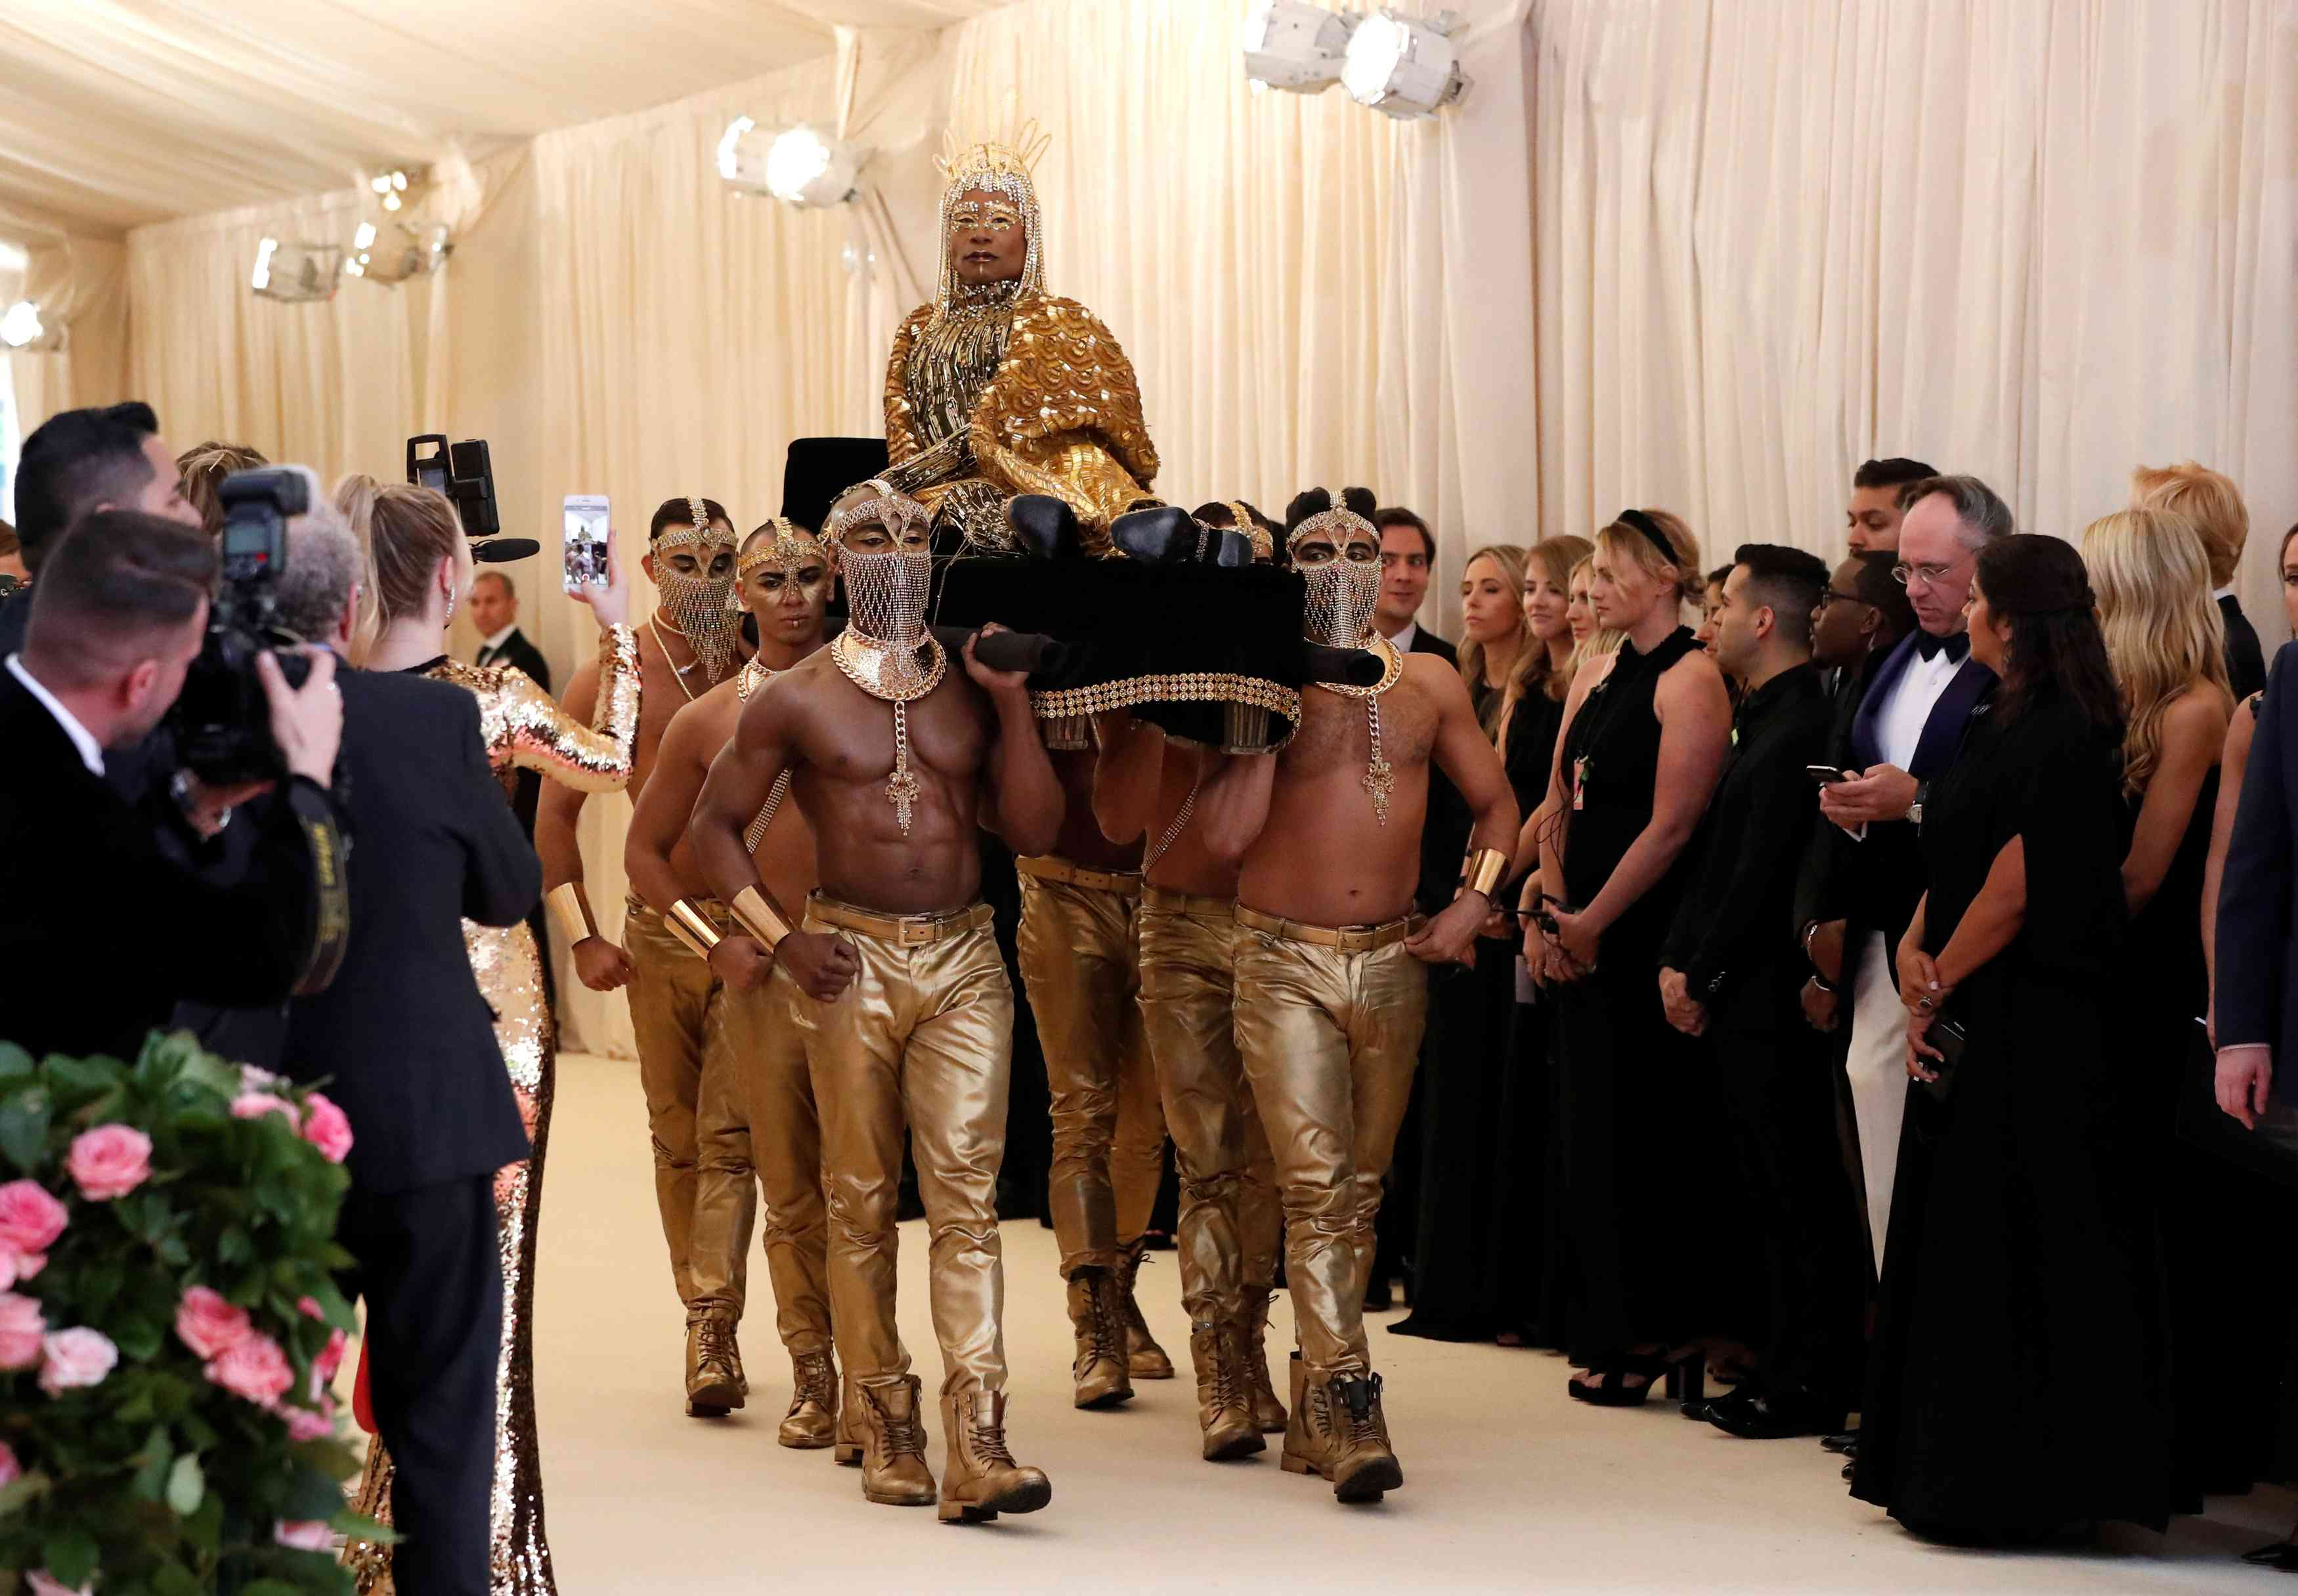 Billy Porter at the Met Gala 2019 | Image credit: Mario Anzuoni / Reuters